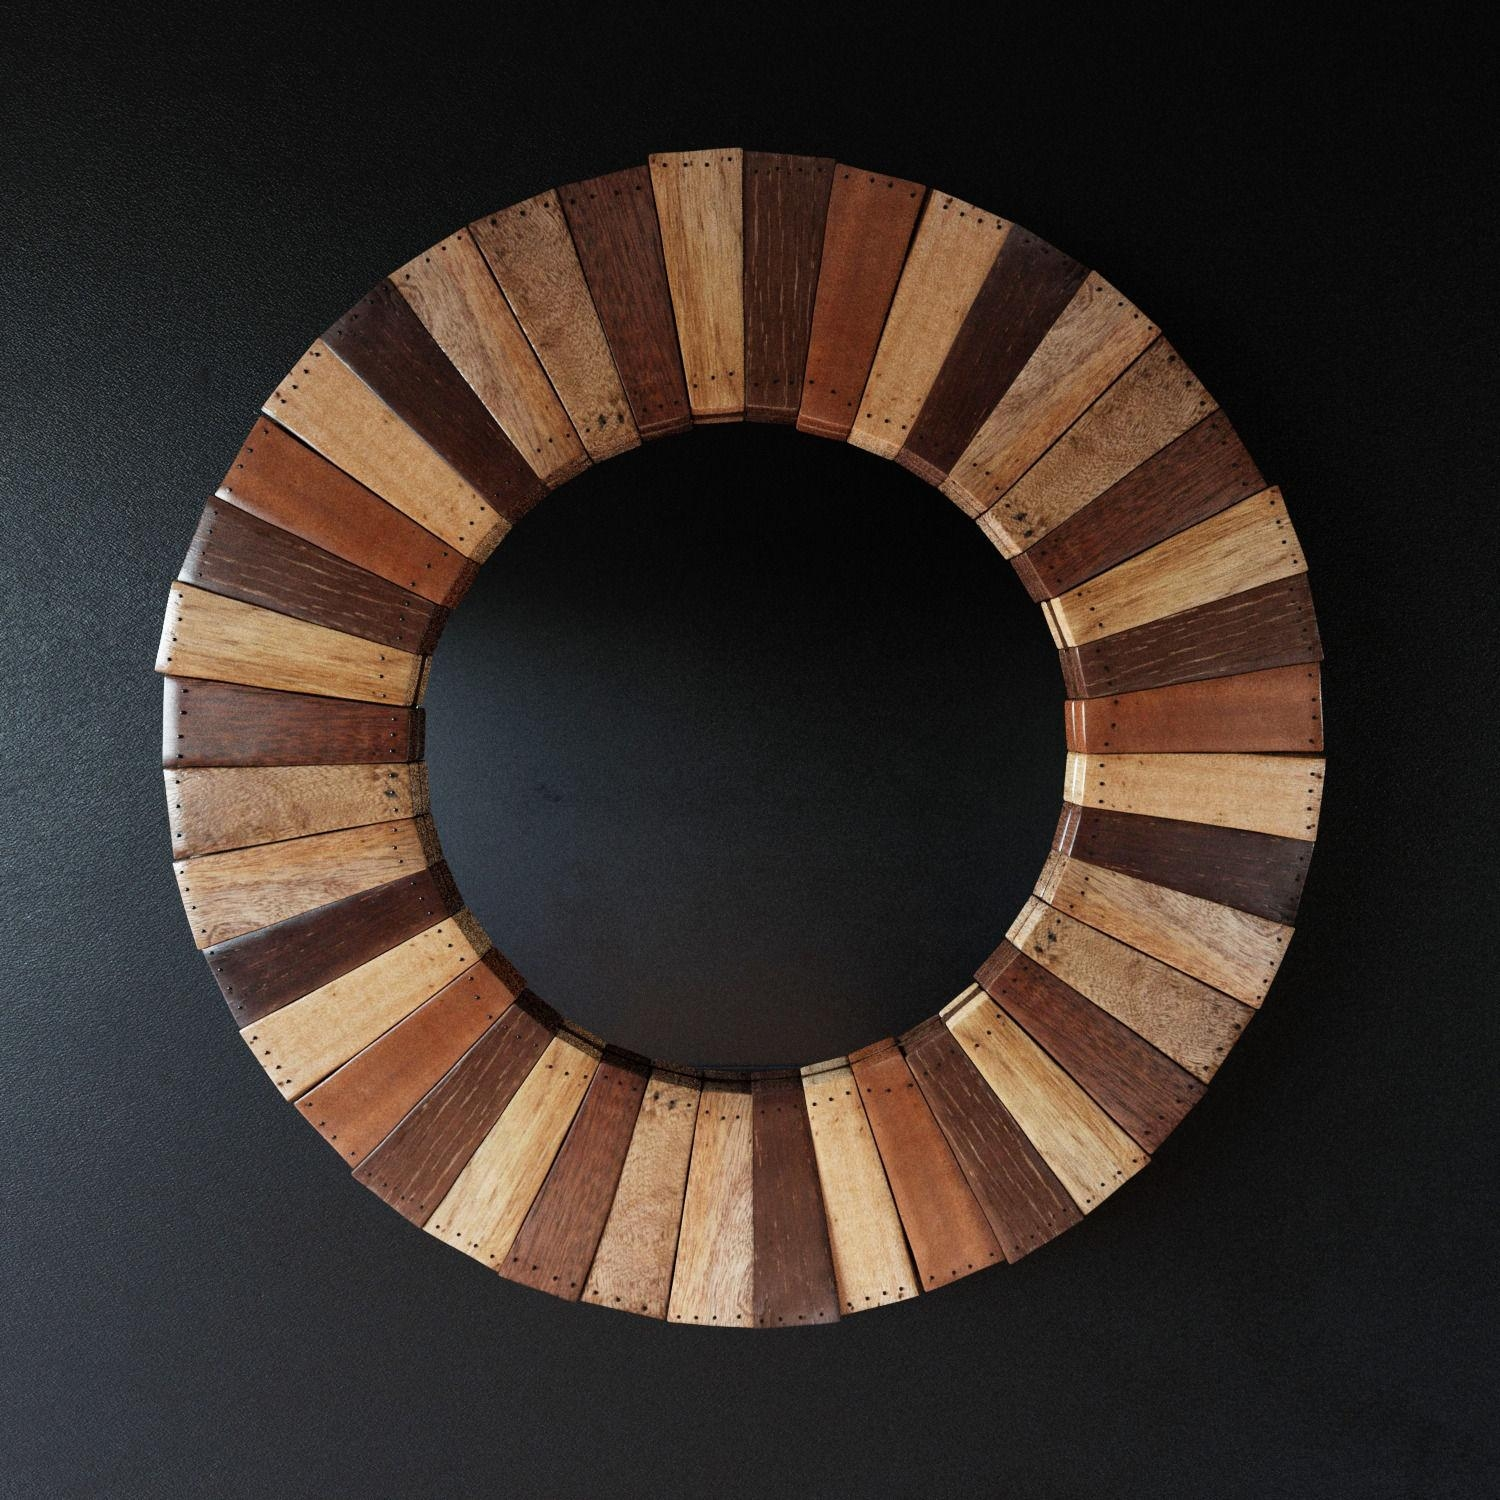 Round Wooden Mirror 3D Model Max Obj Fbx Mtl With Wooden Mirror (Image 5 of 20)